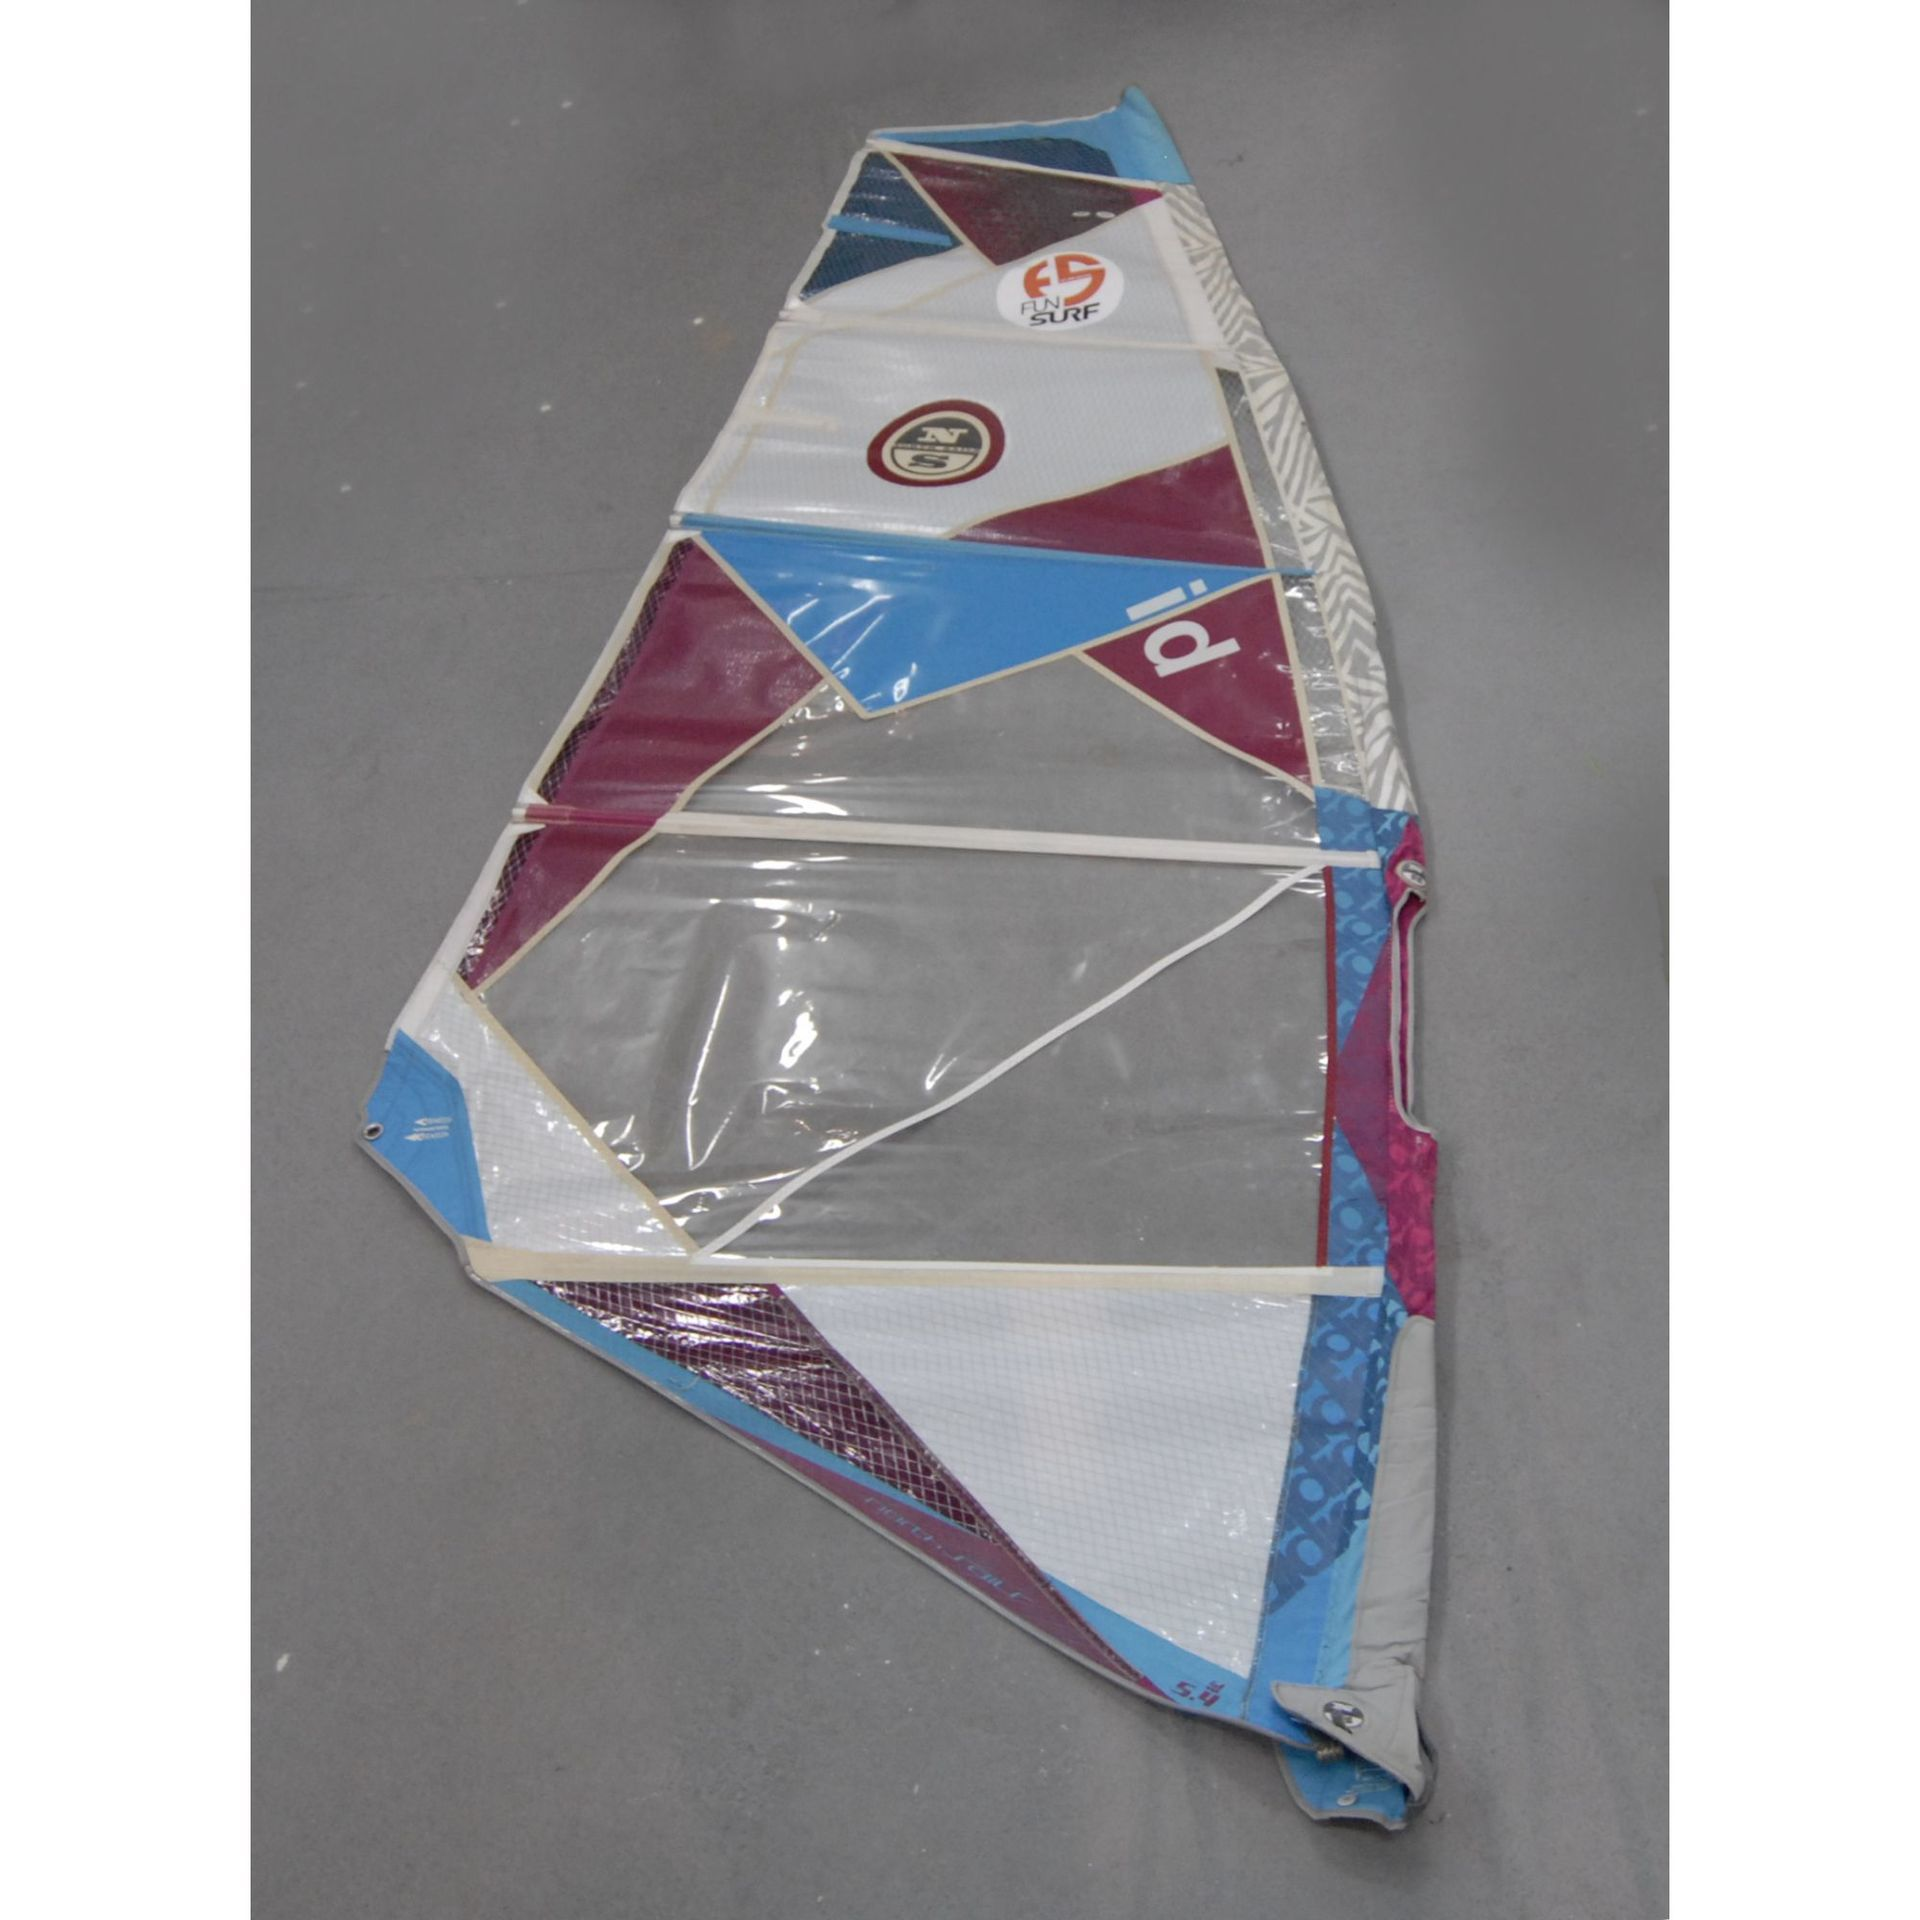 ŻAGIEL WINDSURFINGOWY NORTH SAILS  ID 5.4 - FREERACE  (155419)